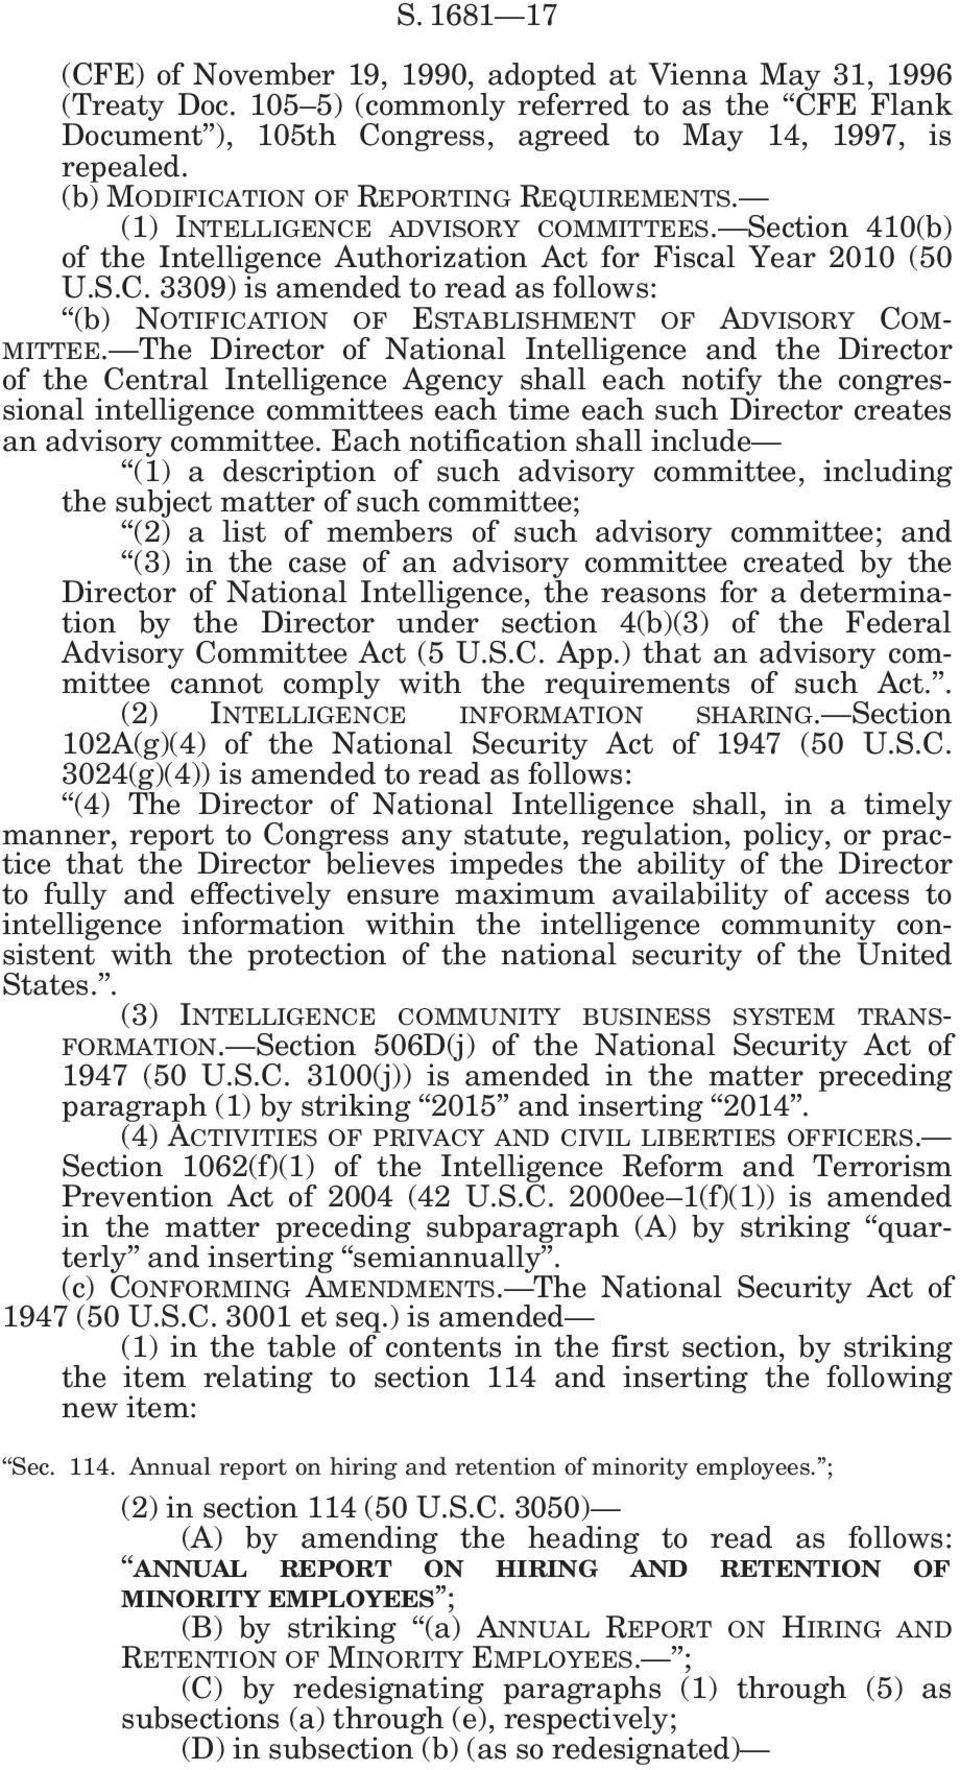 The Director of National Intelligence and the Director of the Central Intelligence Agency shall each notify the congressional intelligence committees each time each such Director creates an advisory